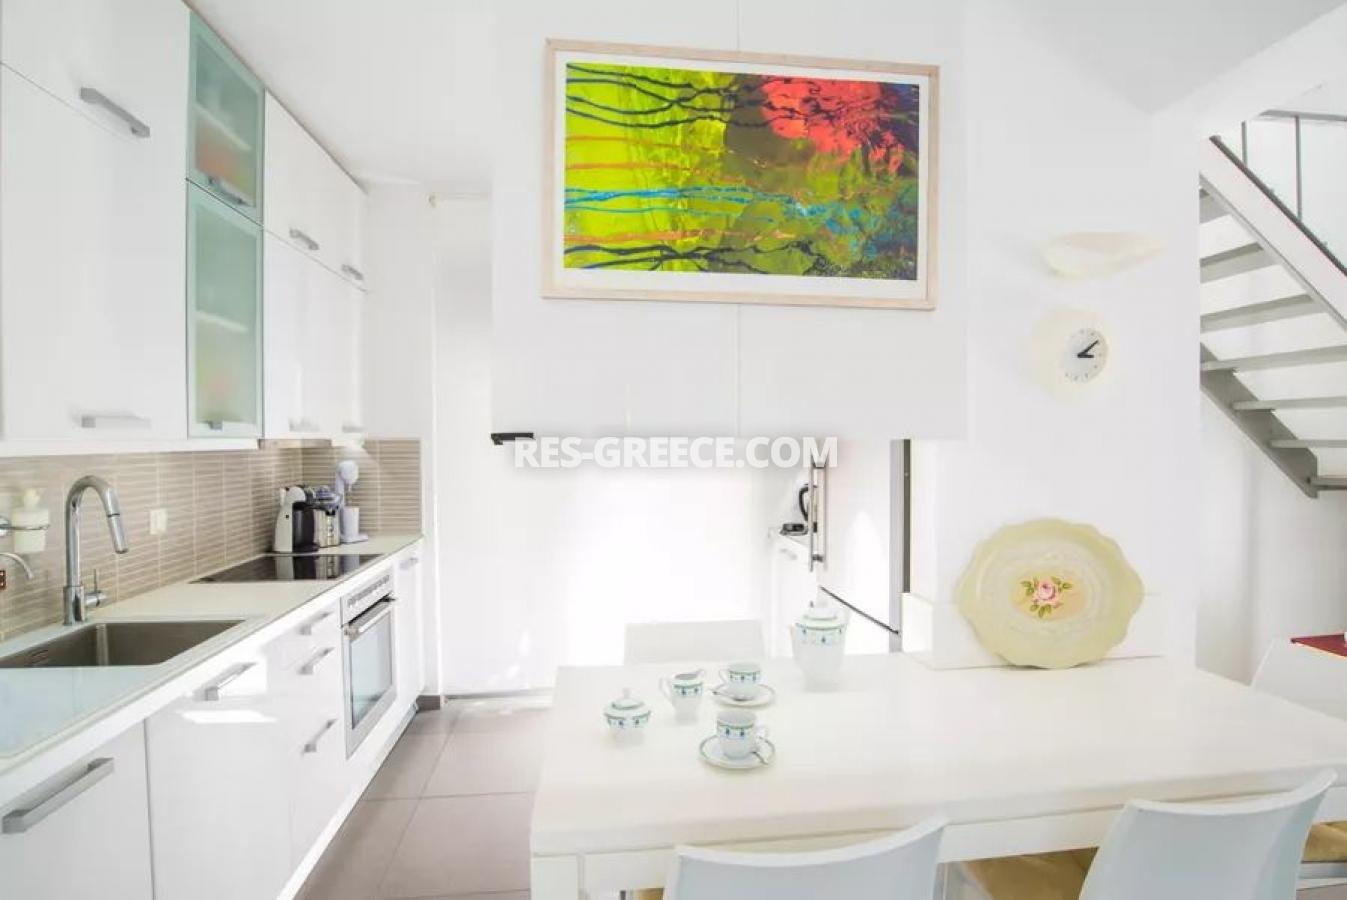 Sparties, Halkidiki-Sithonia, Greece - modern house in Sithonia for sale - Photo 3